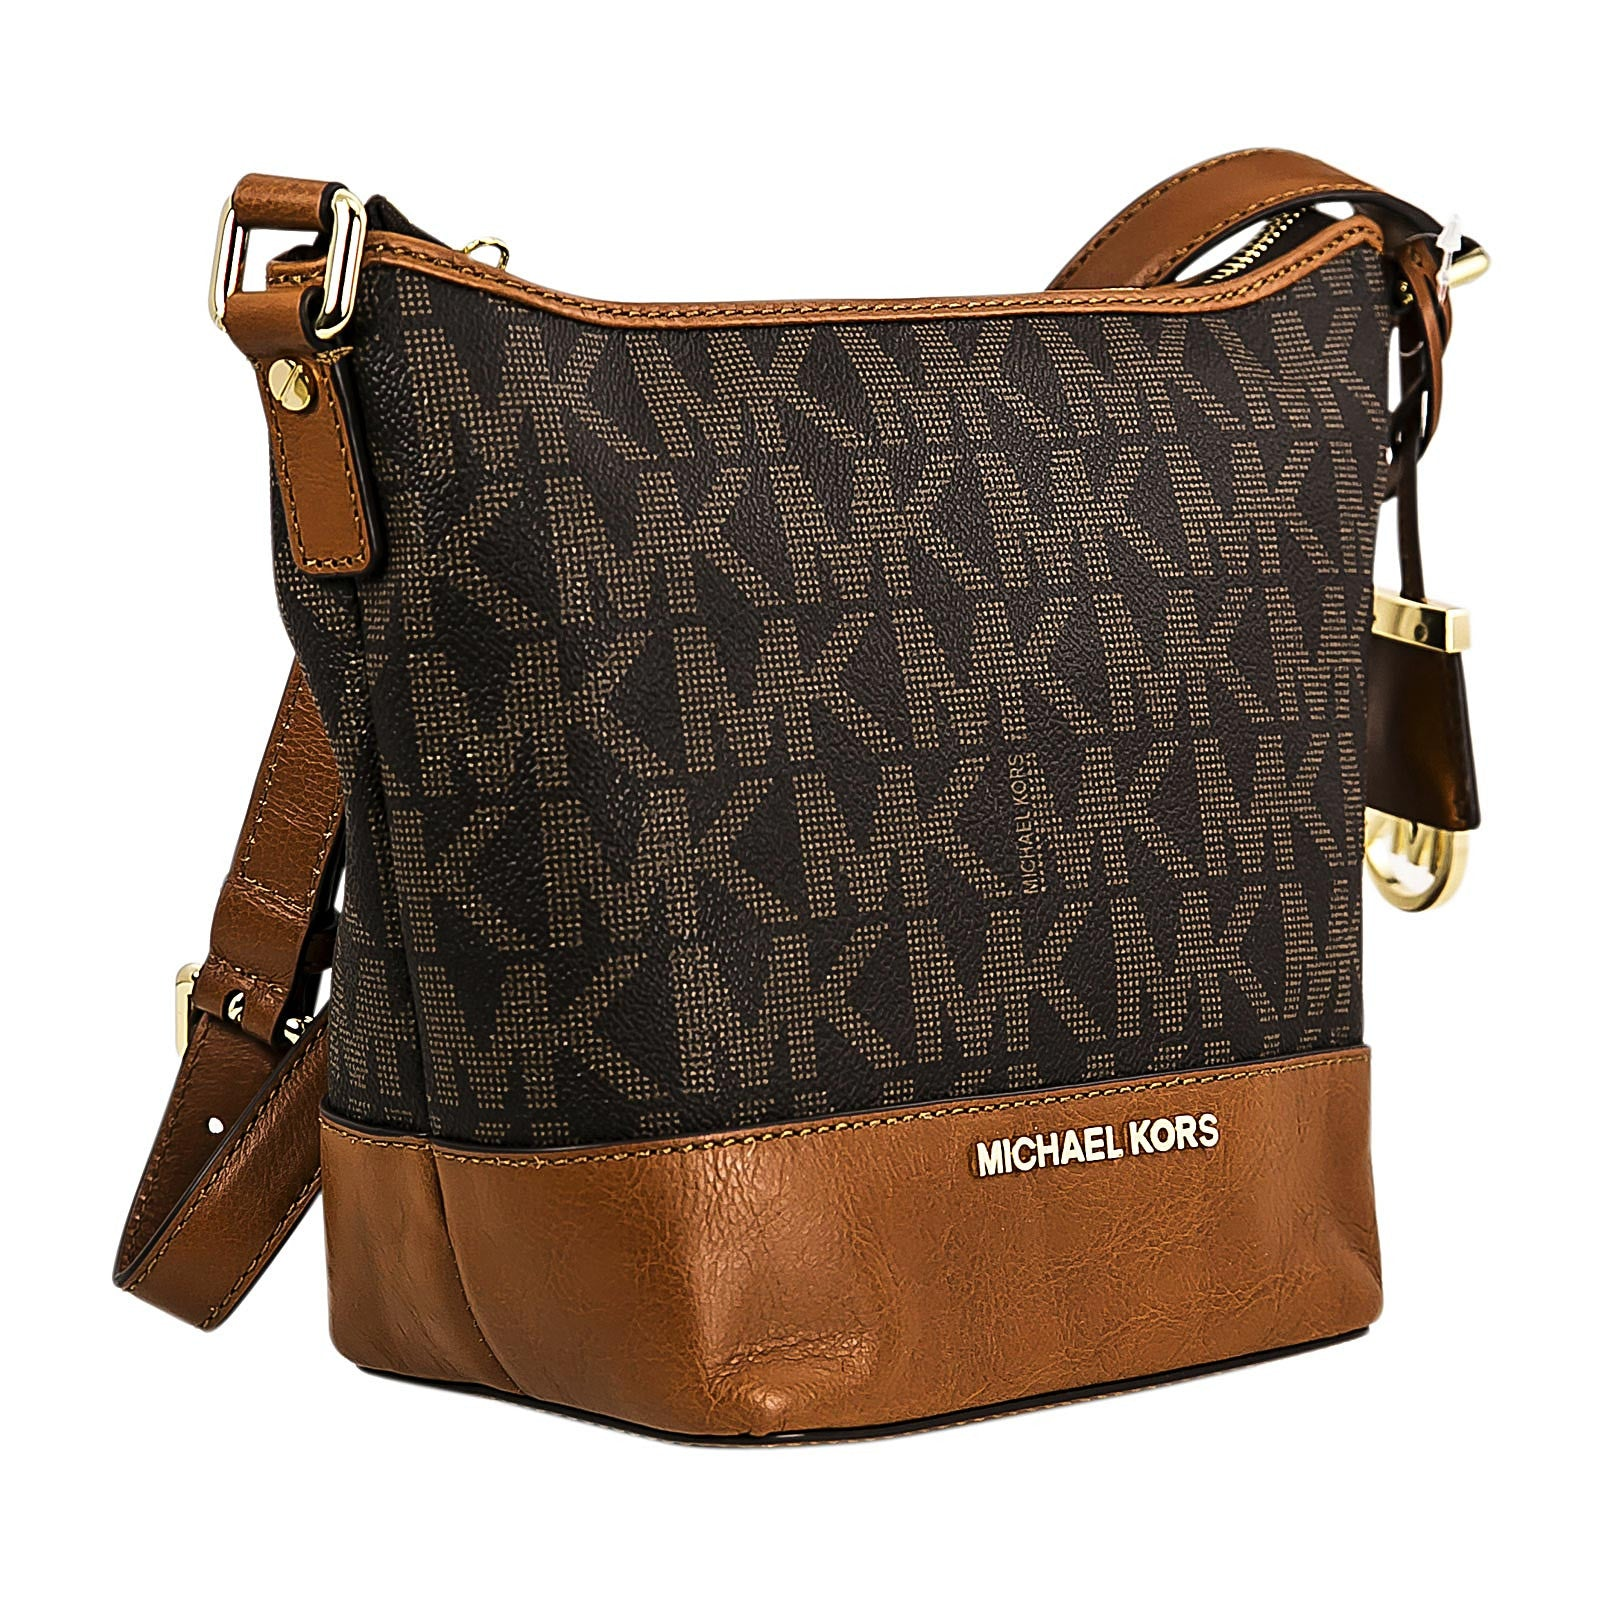 Michael Kors 30T5GBFM1B-200 Women's Bedford Small Brown PVC & Brown Leather Messenger